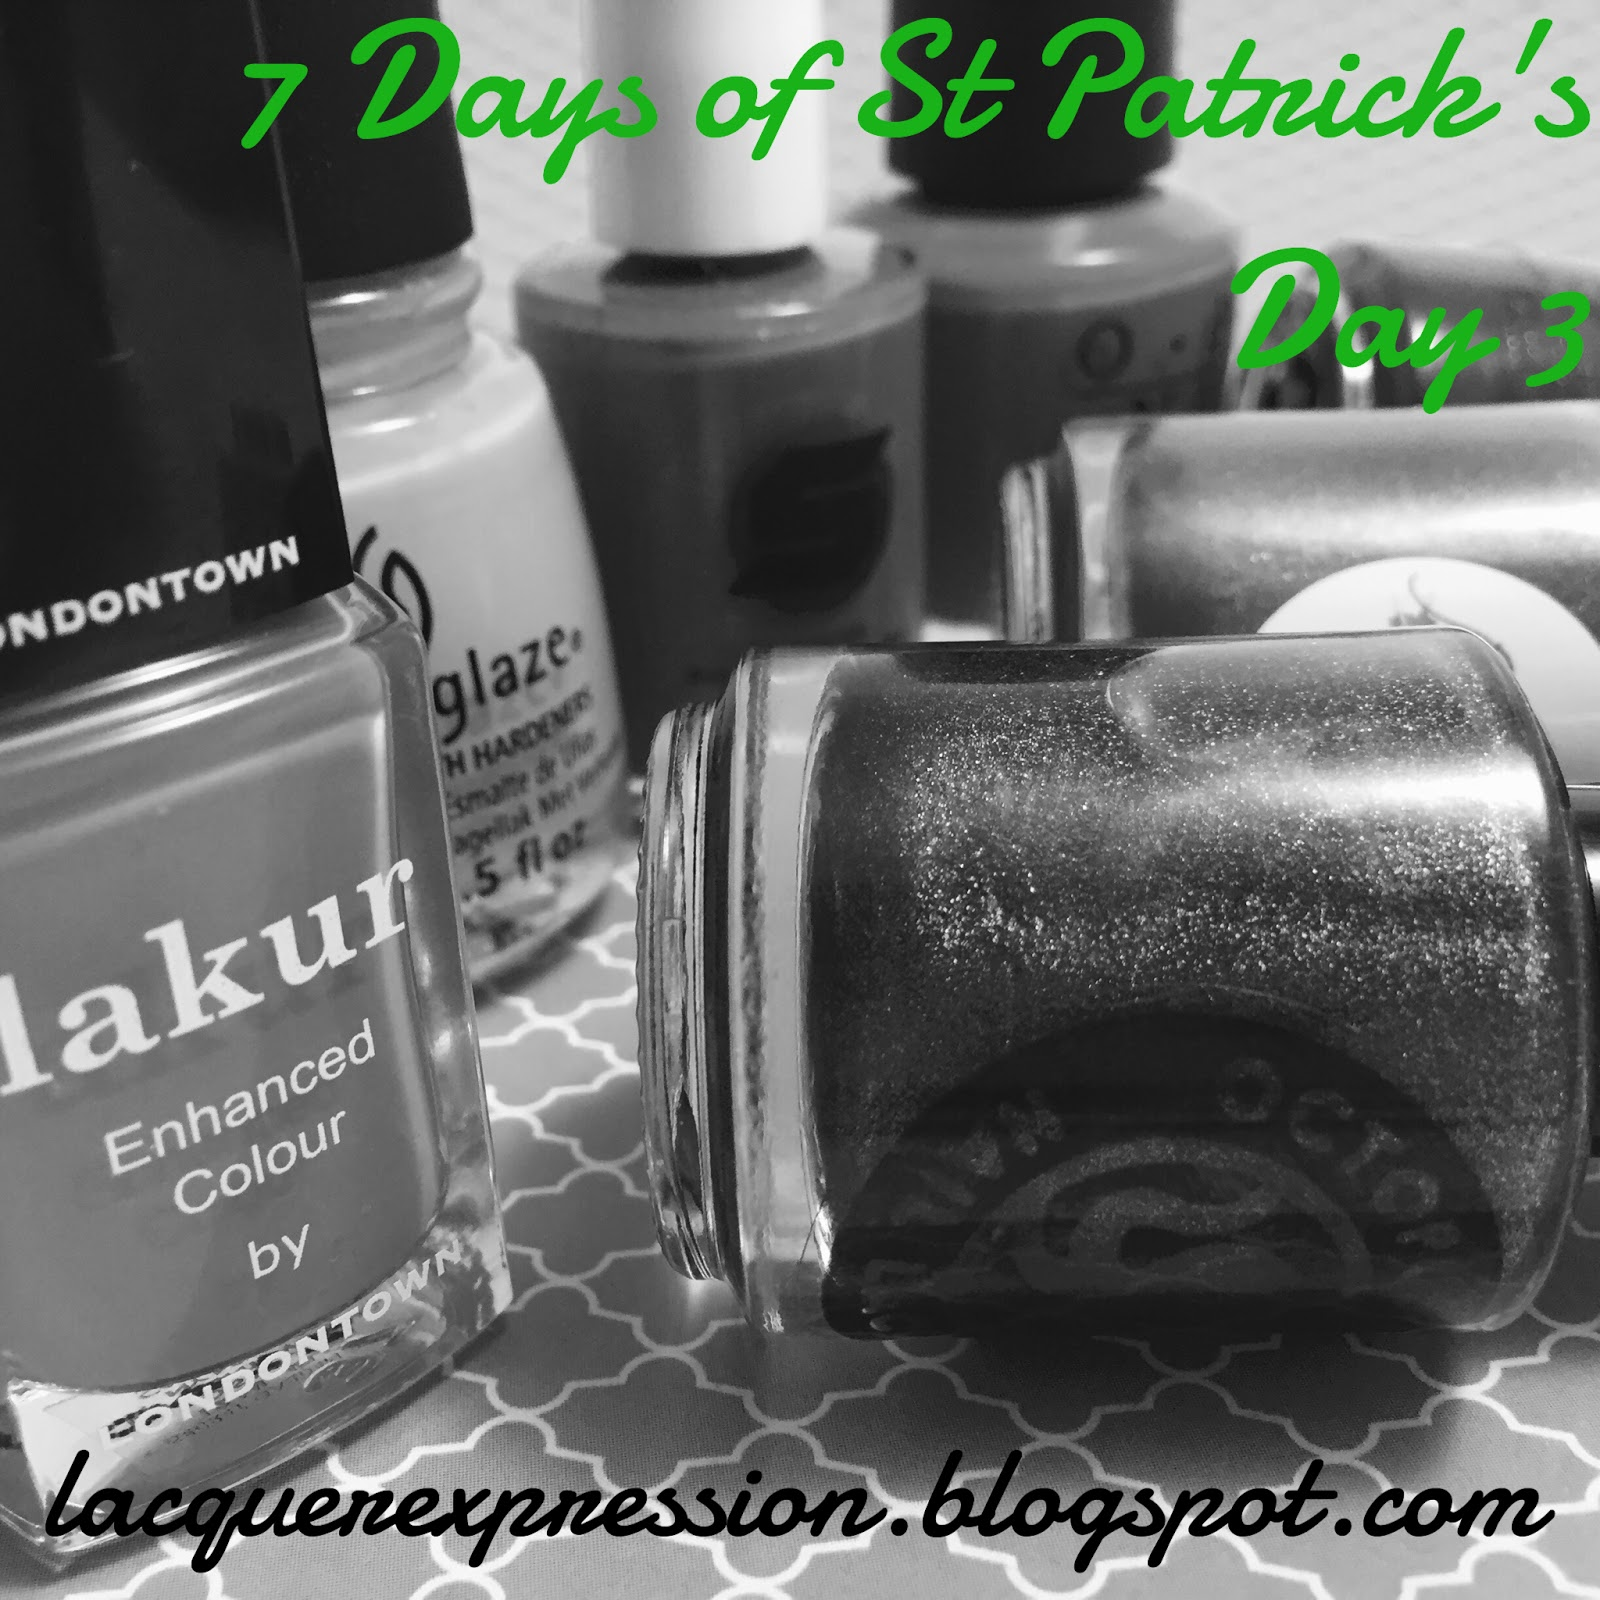 7 Days of St Patrick\'s - Day 3 - LacquerExpression